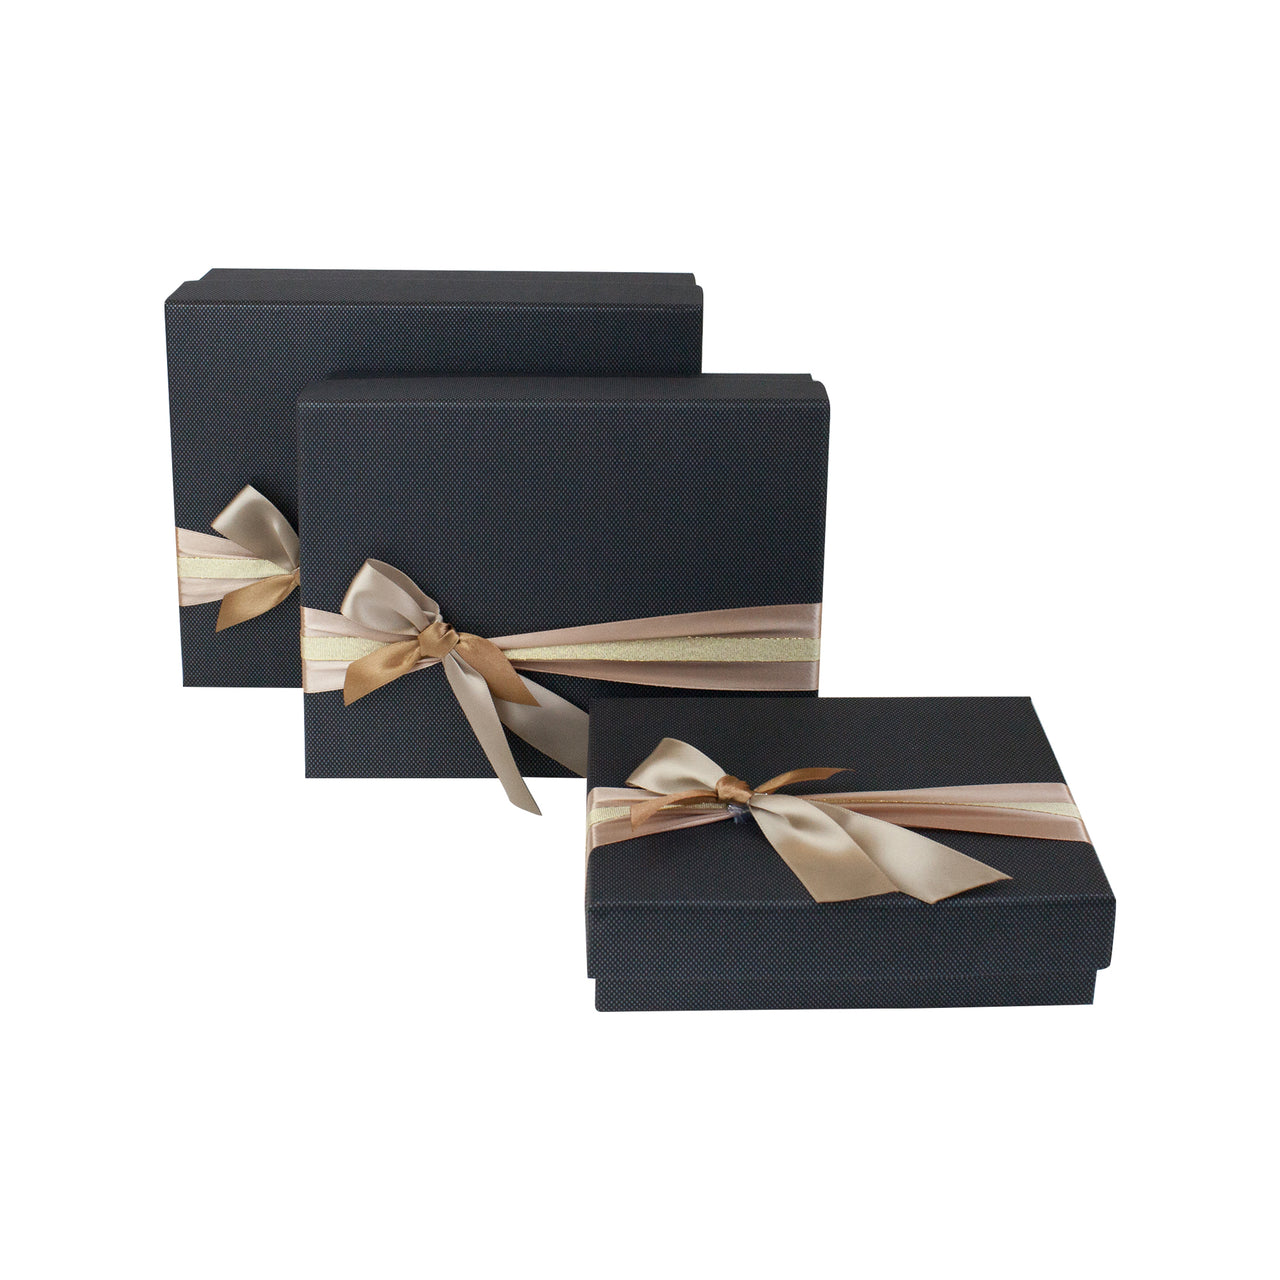 Black Gold Bow Gift Box - Set Of 3 - EMARTBUY